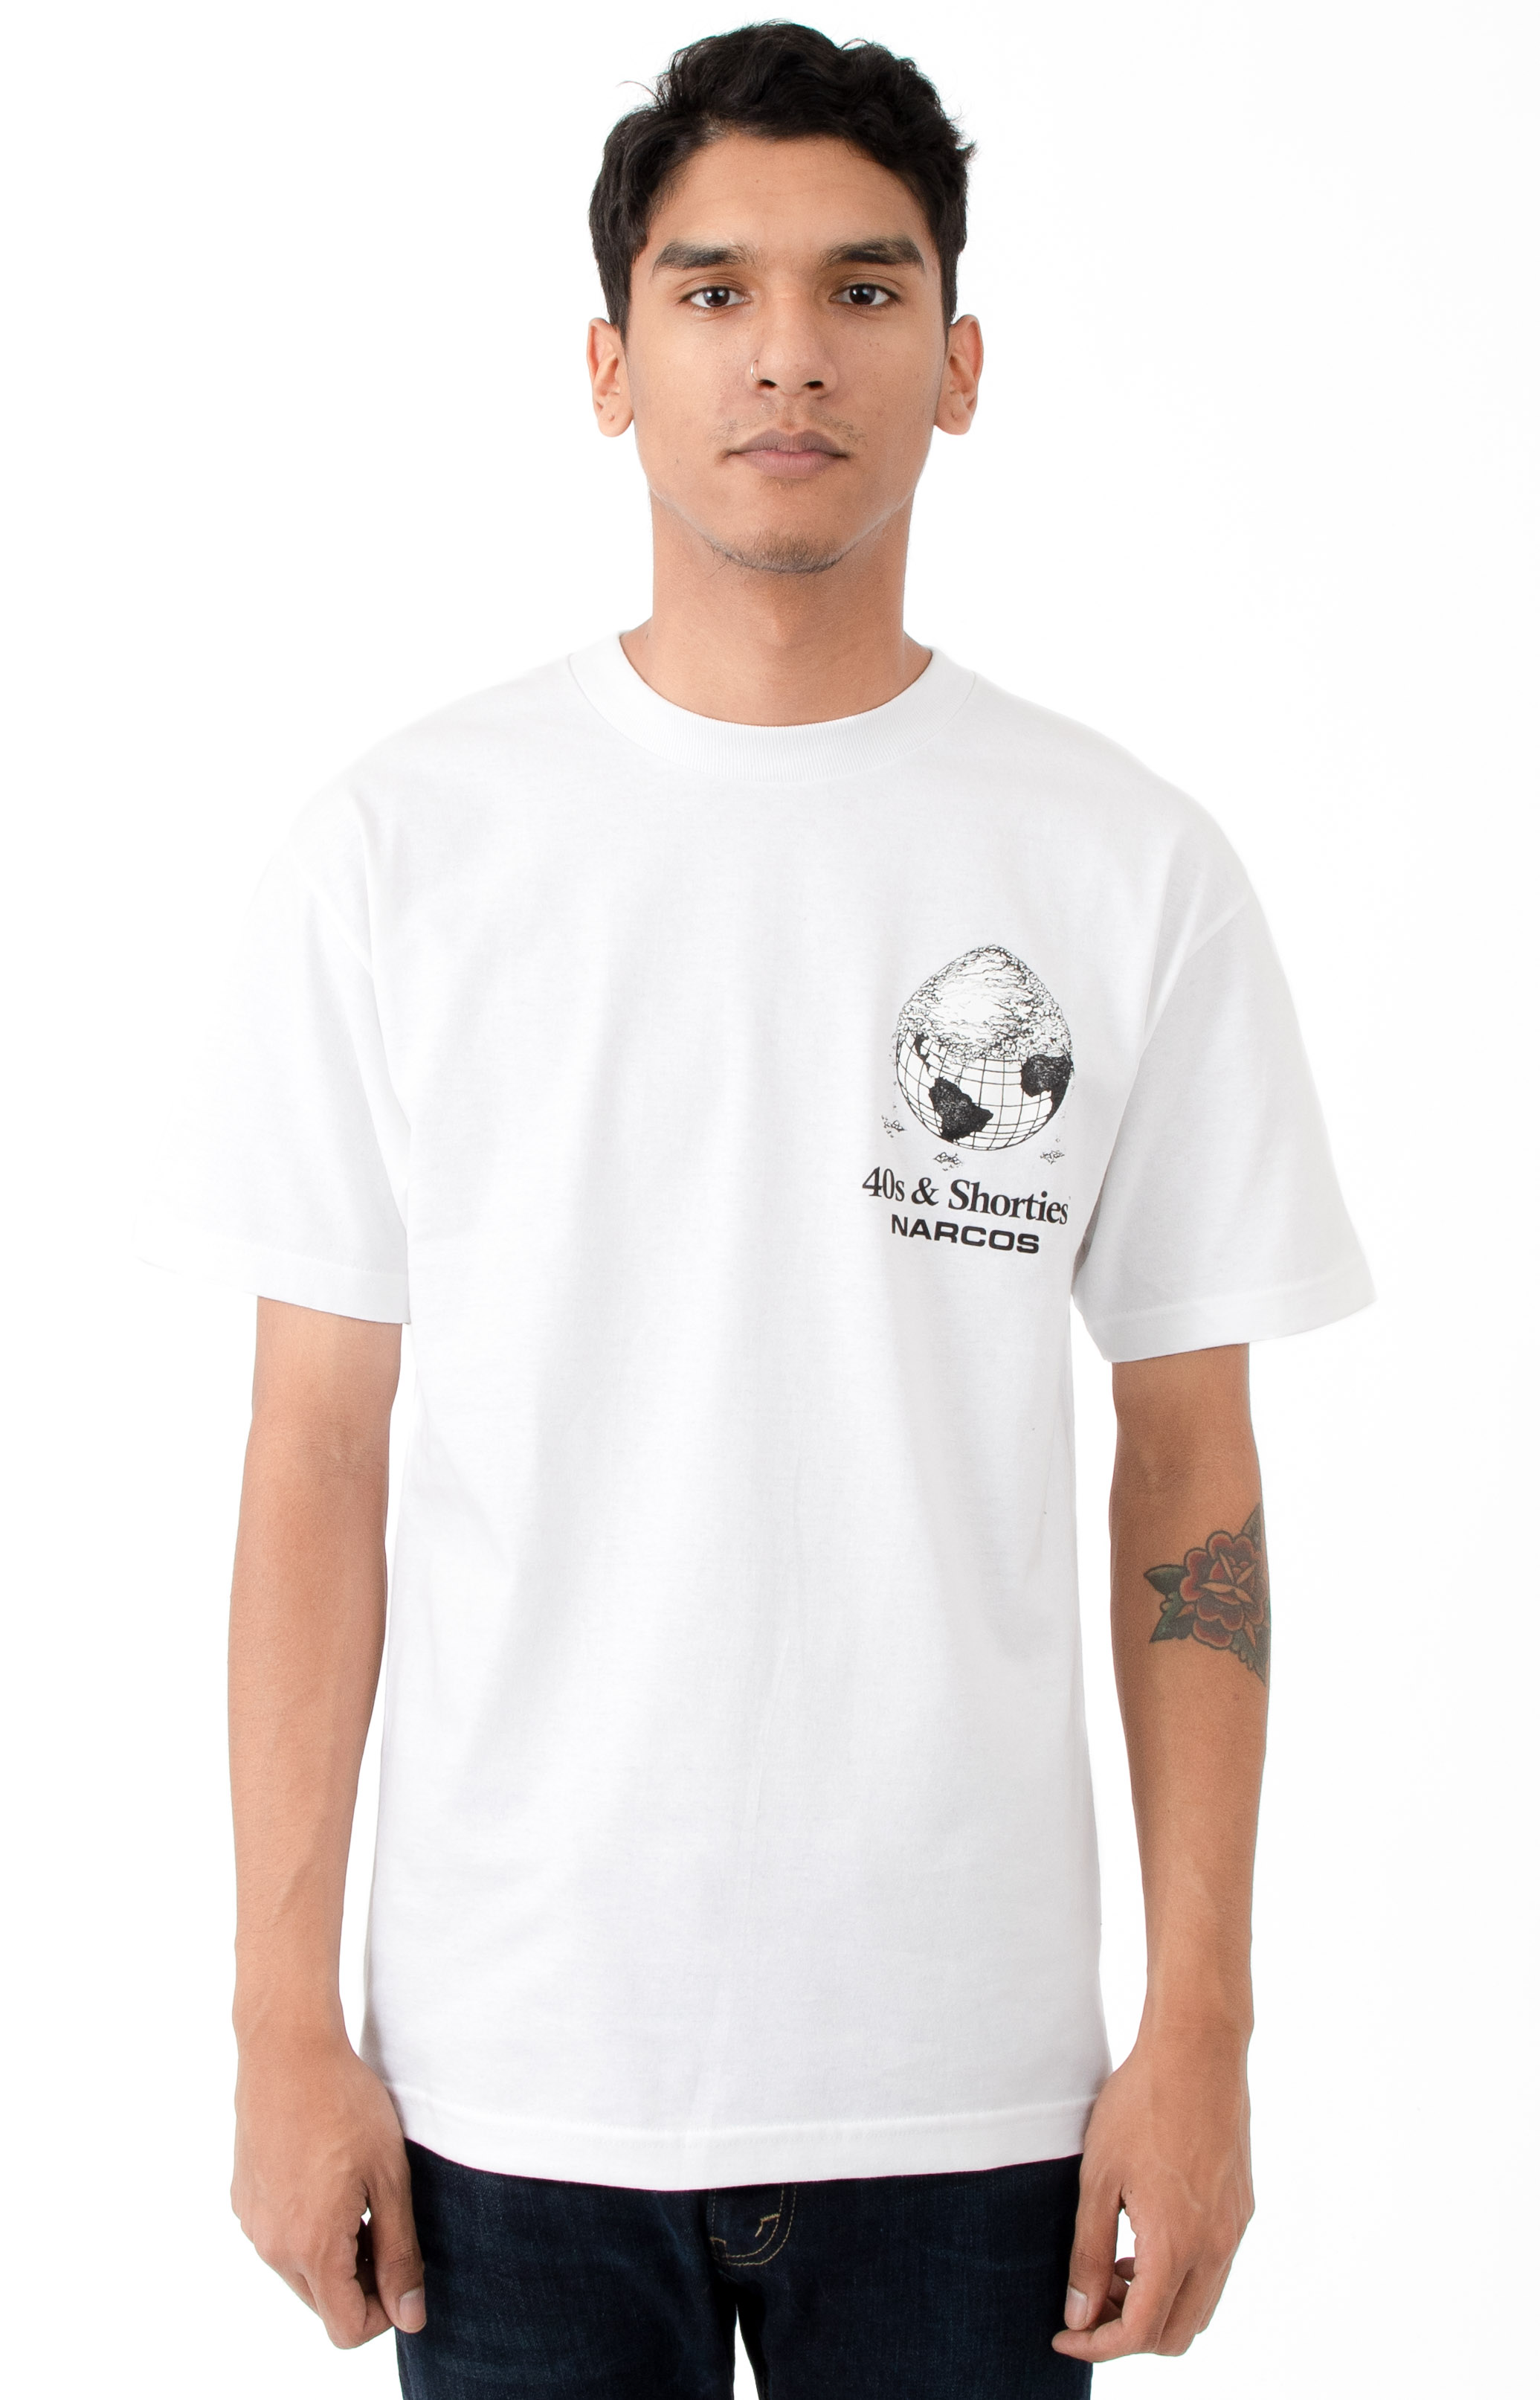 Cover The Earth T-Shirt - White 2